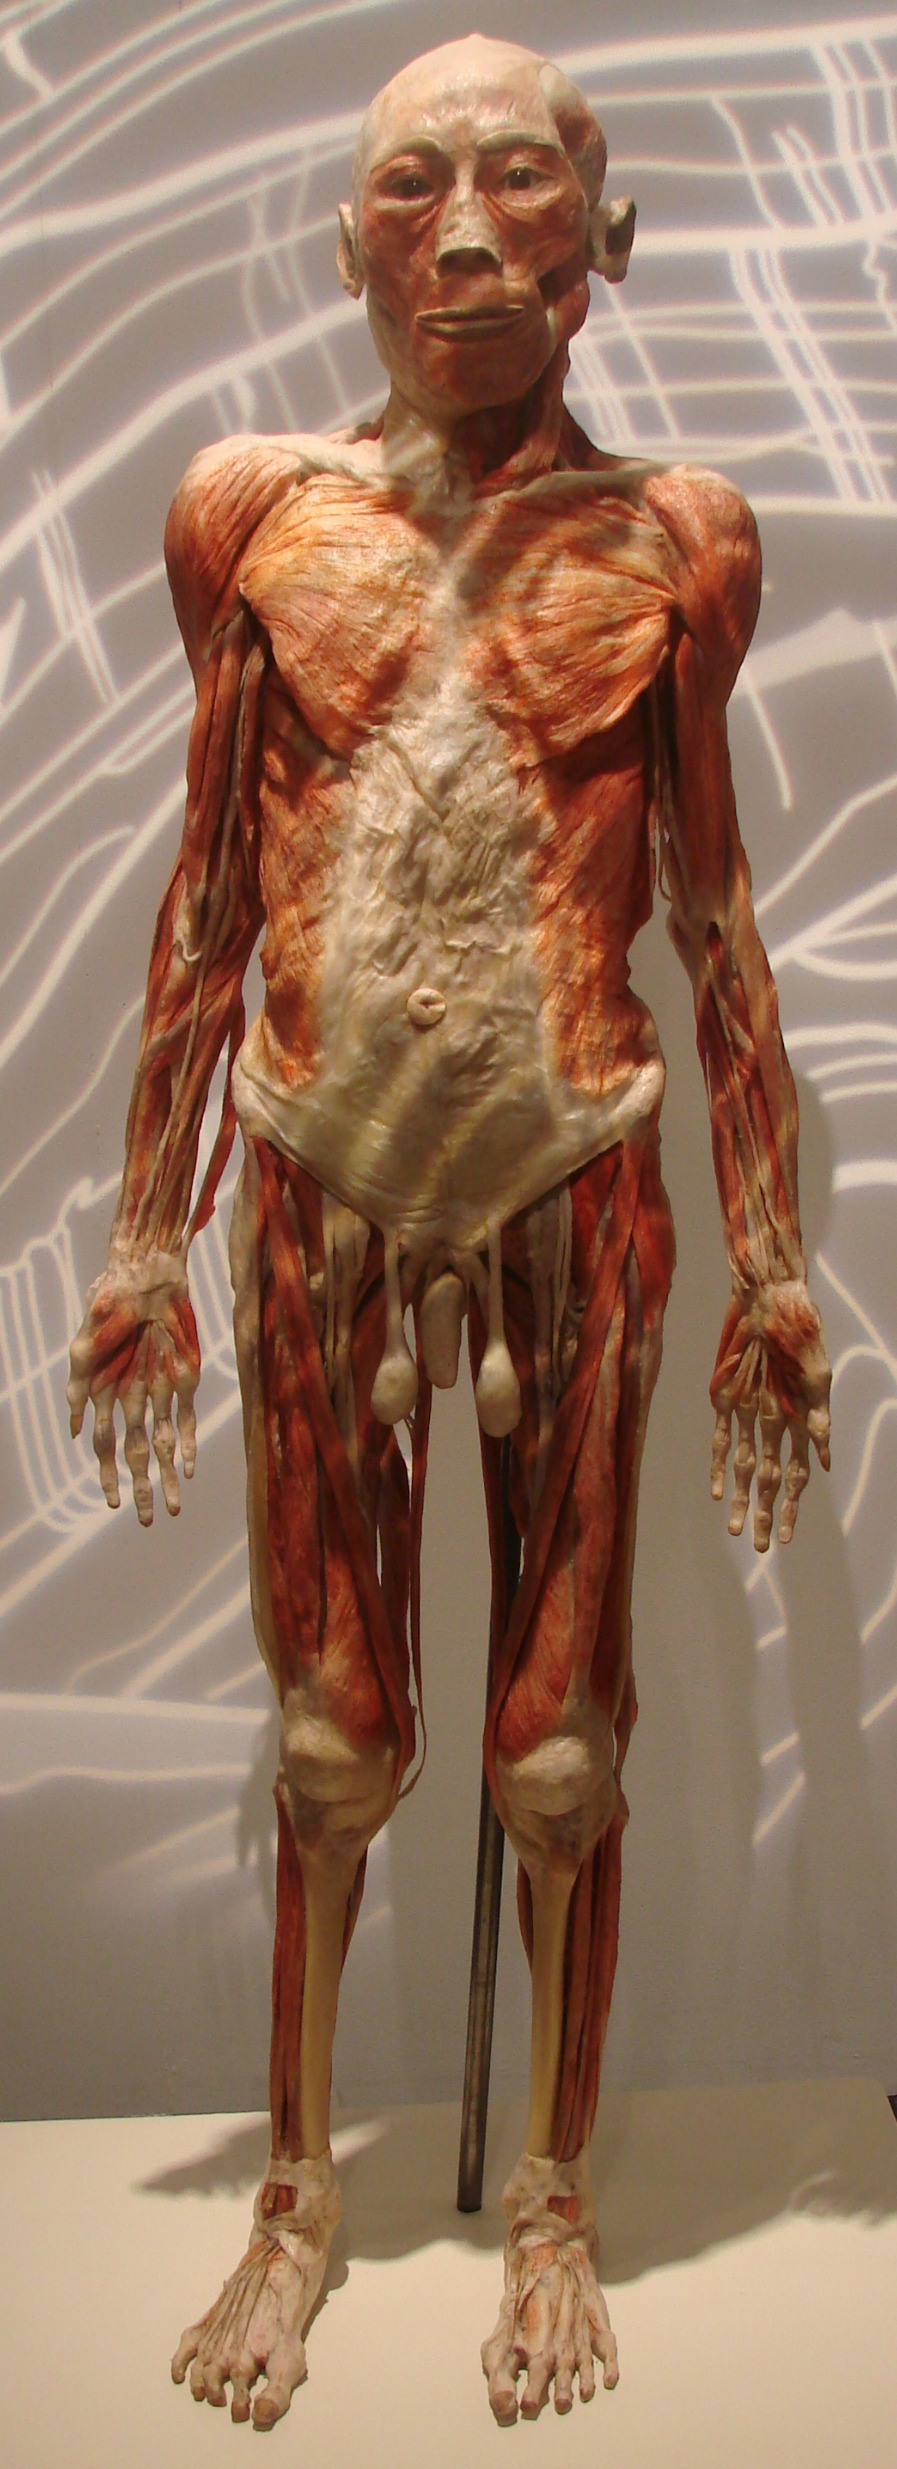 bodies exhibit essay I believe the educational value of this exhibit is extraordinary we can look into the mirror and simply see our external appearance, but bodiesthe exhibition also allows us to know what.